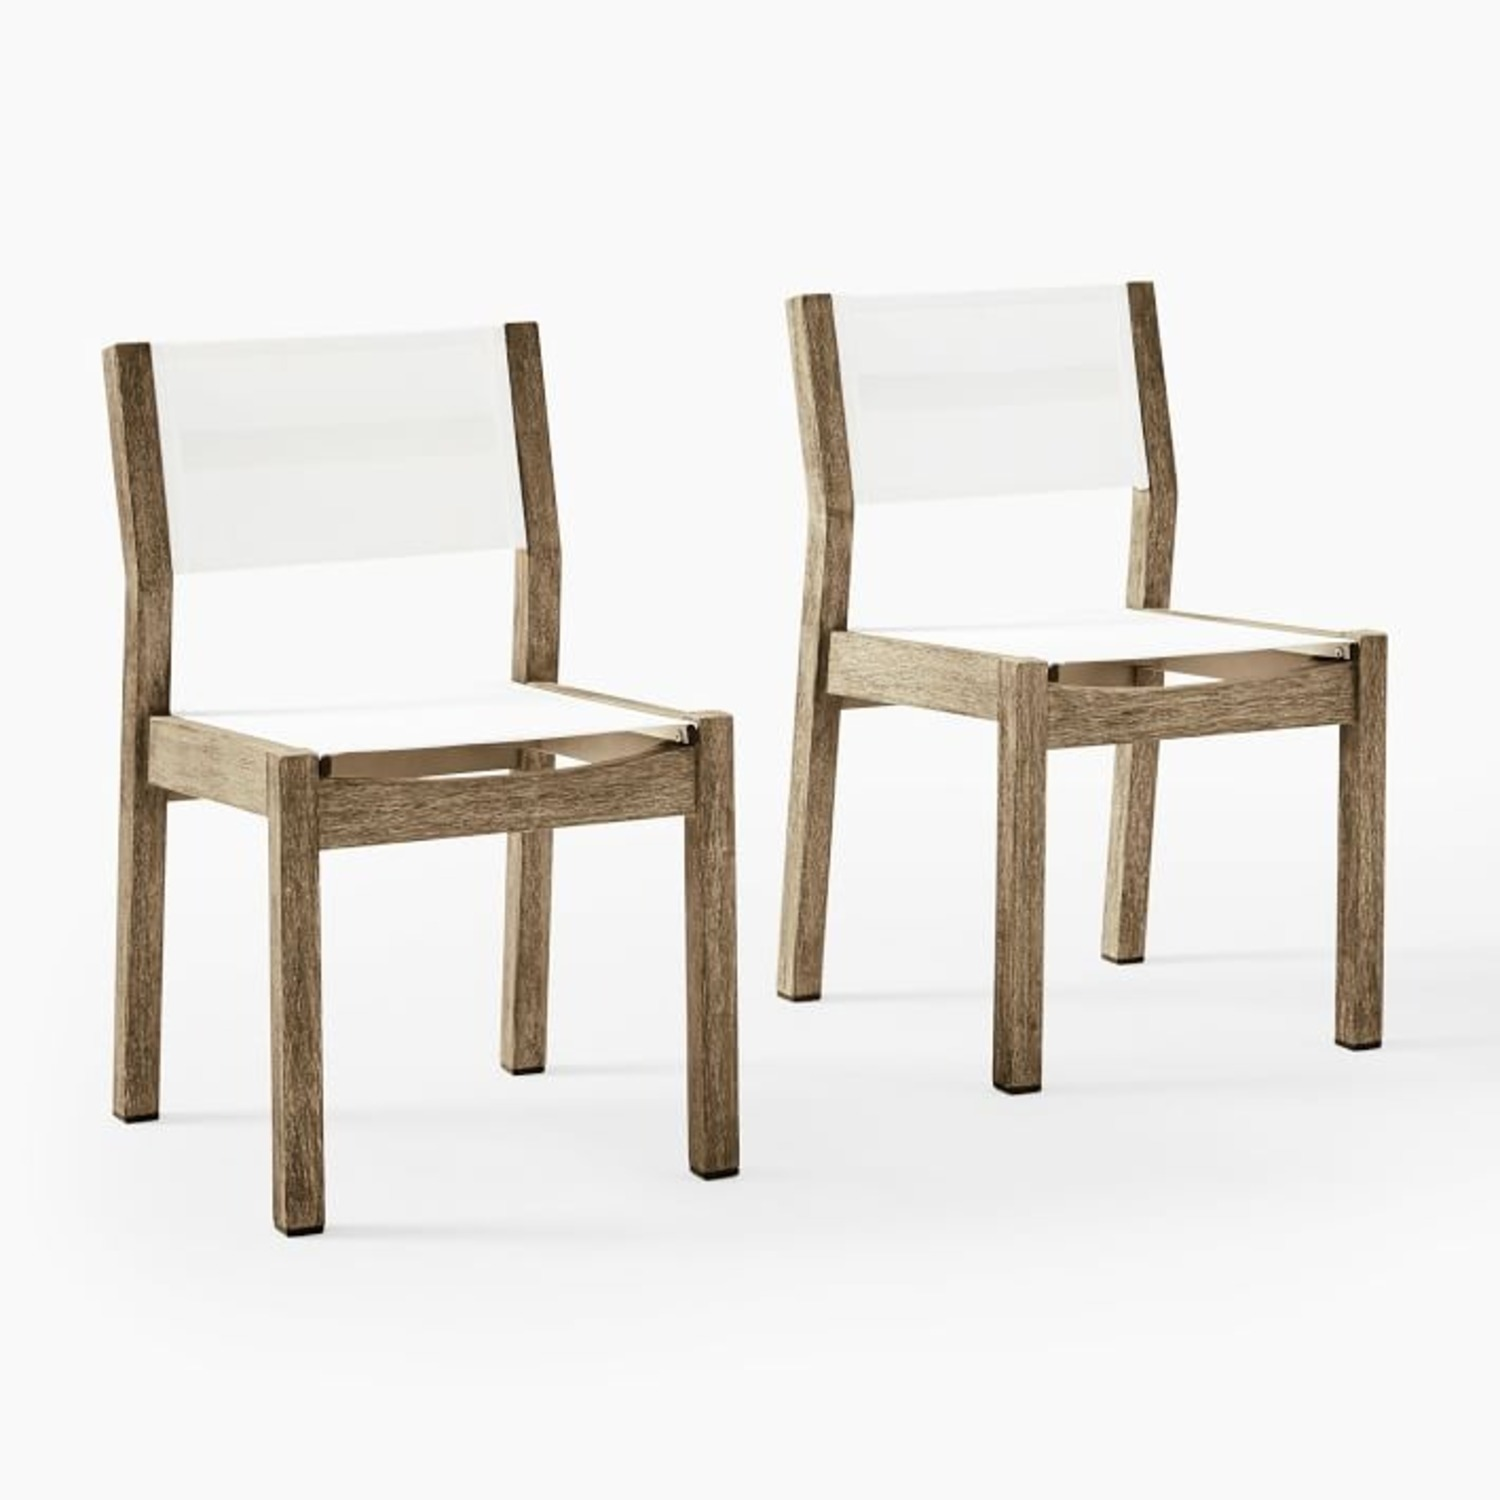 West Elm Portside Dining Chairs, Set of 2 - image-3